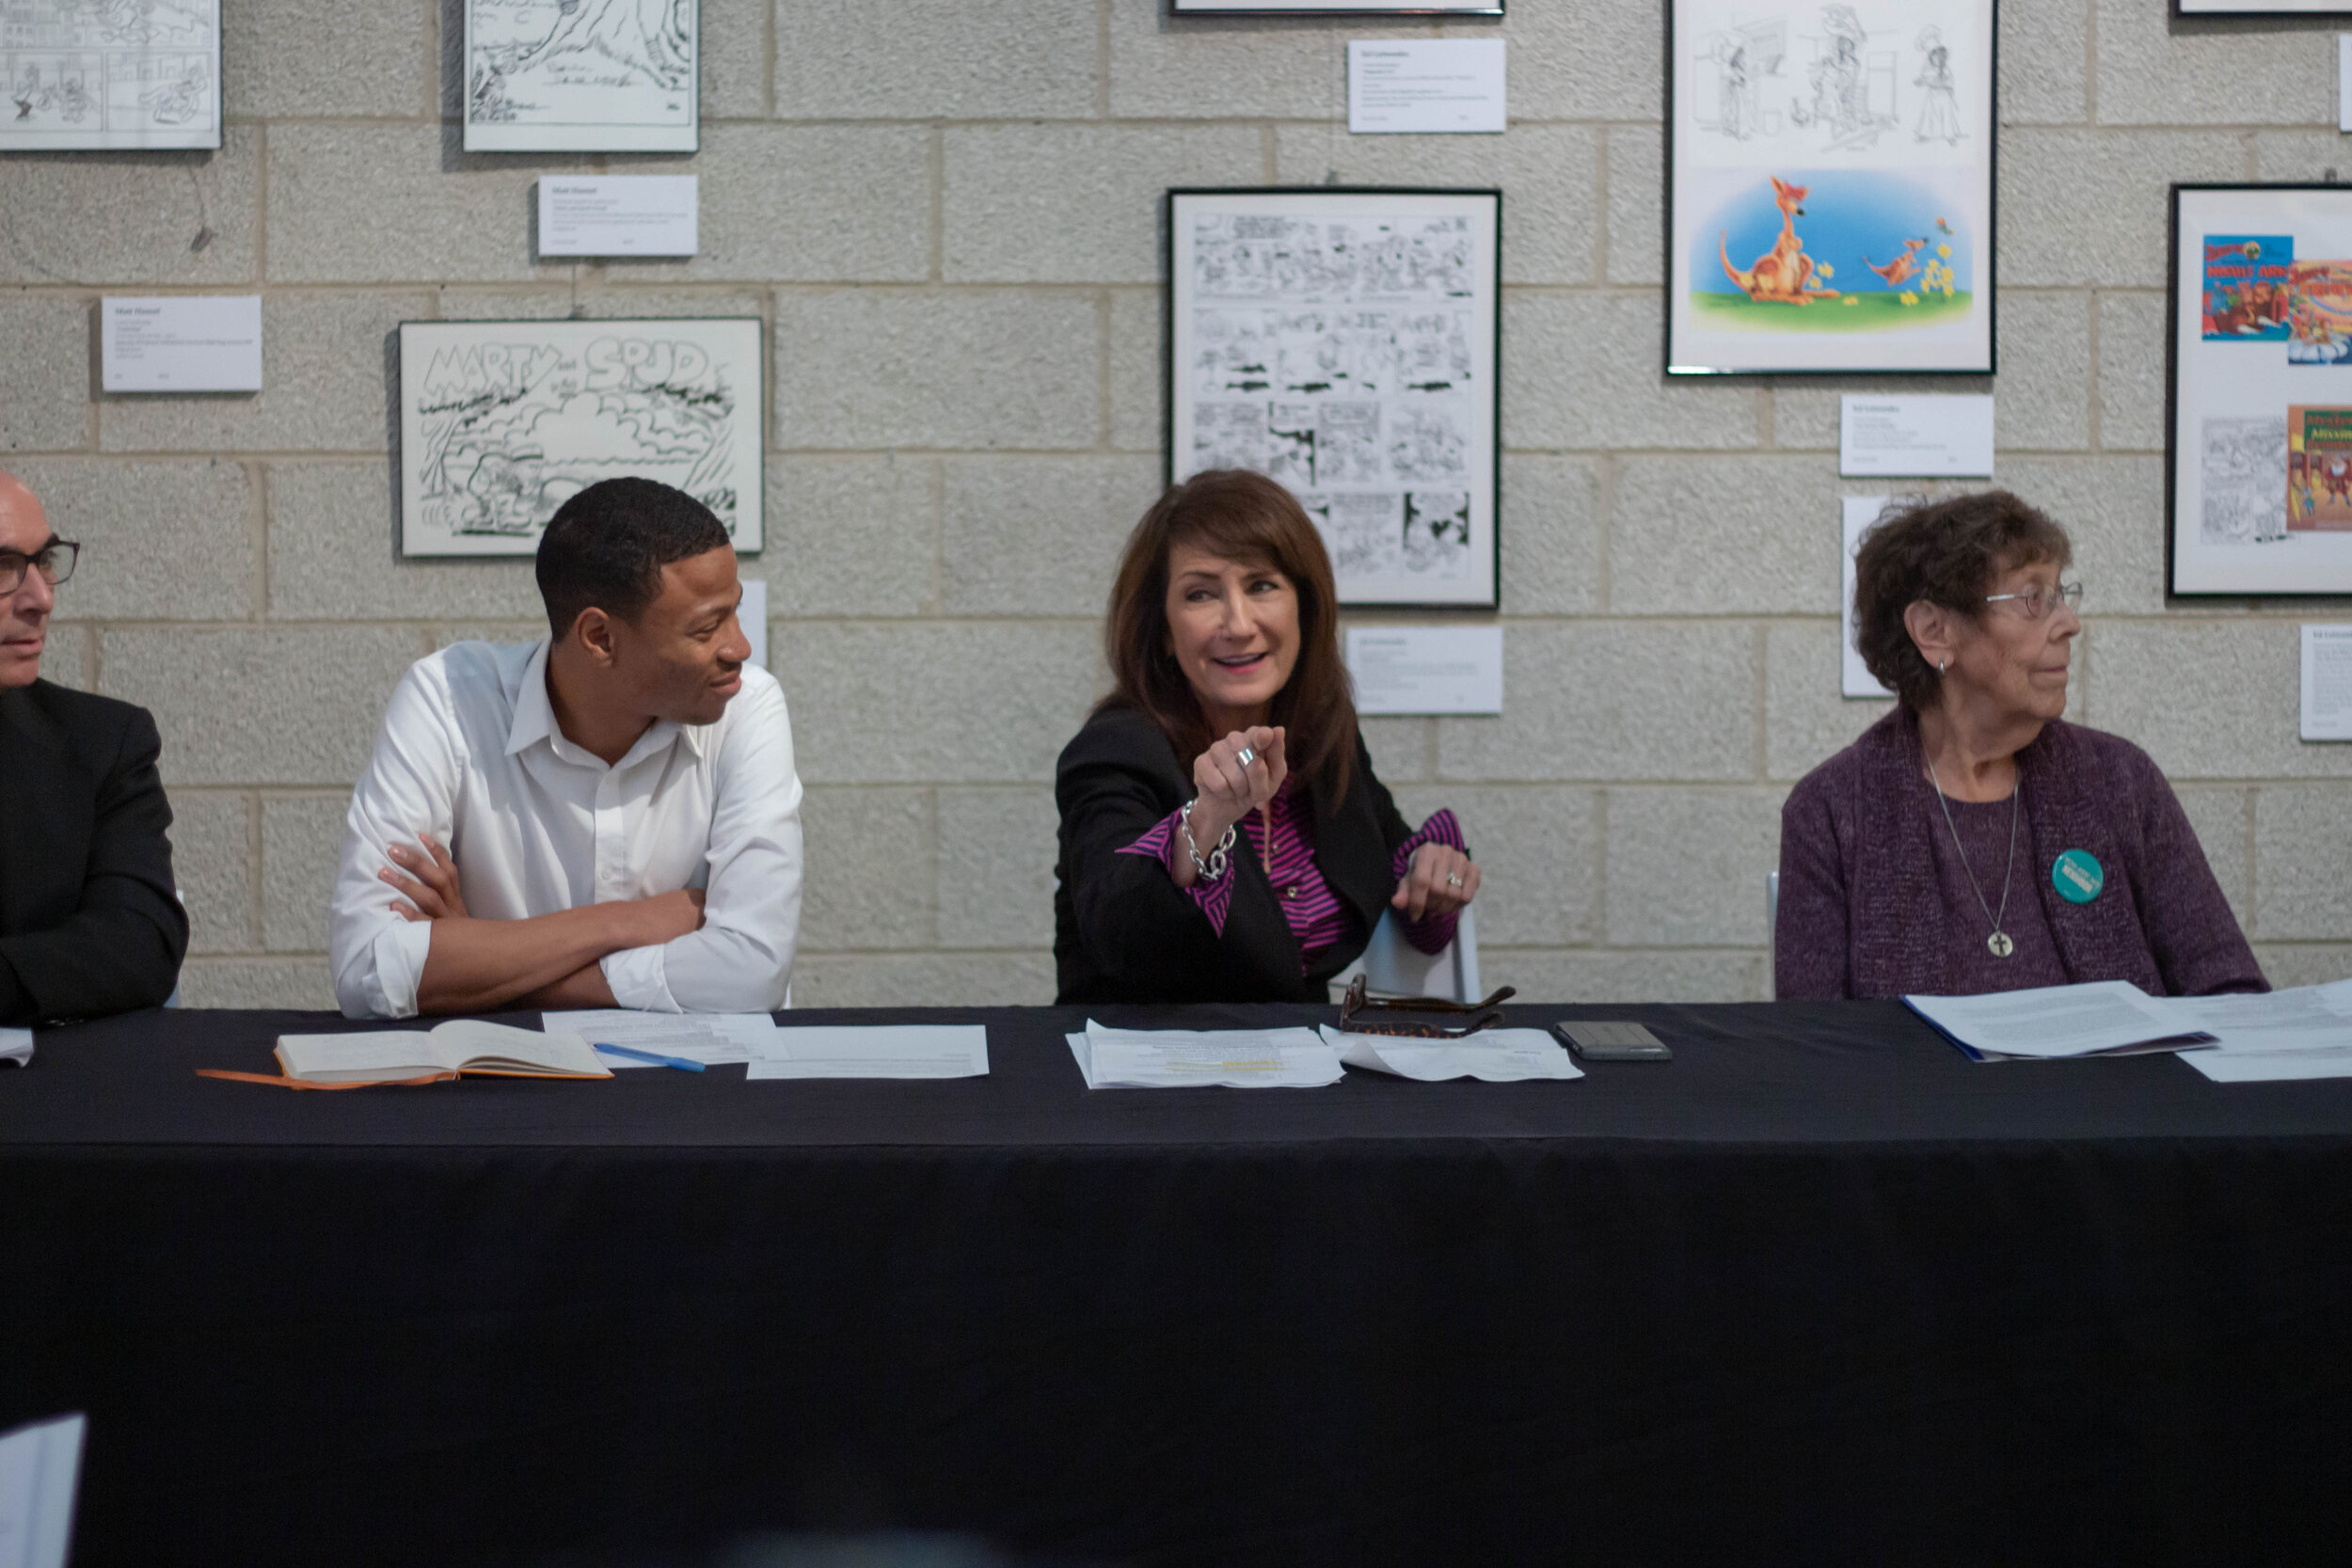 (Left to right) Robert Emmons Jr., Marie Newman and JoAnn Persch along with other speakers share the stage to talk about racism in Chicago. Emmons and Newman are both congressional candidates for the first and third districts respectively.